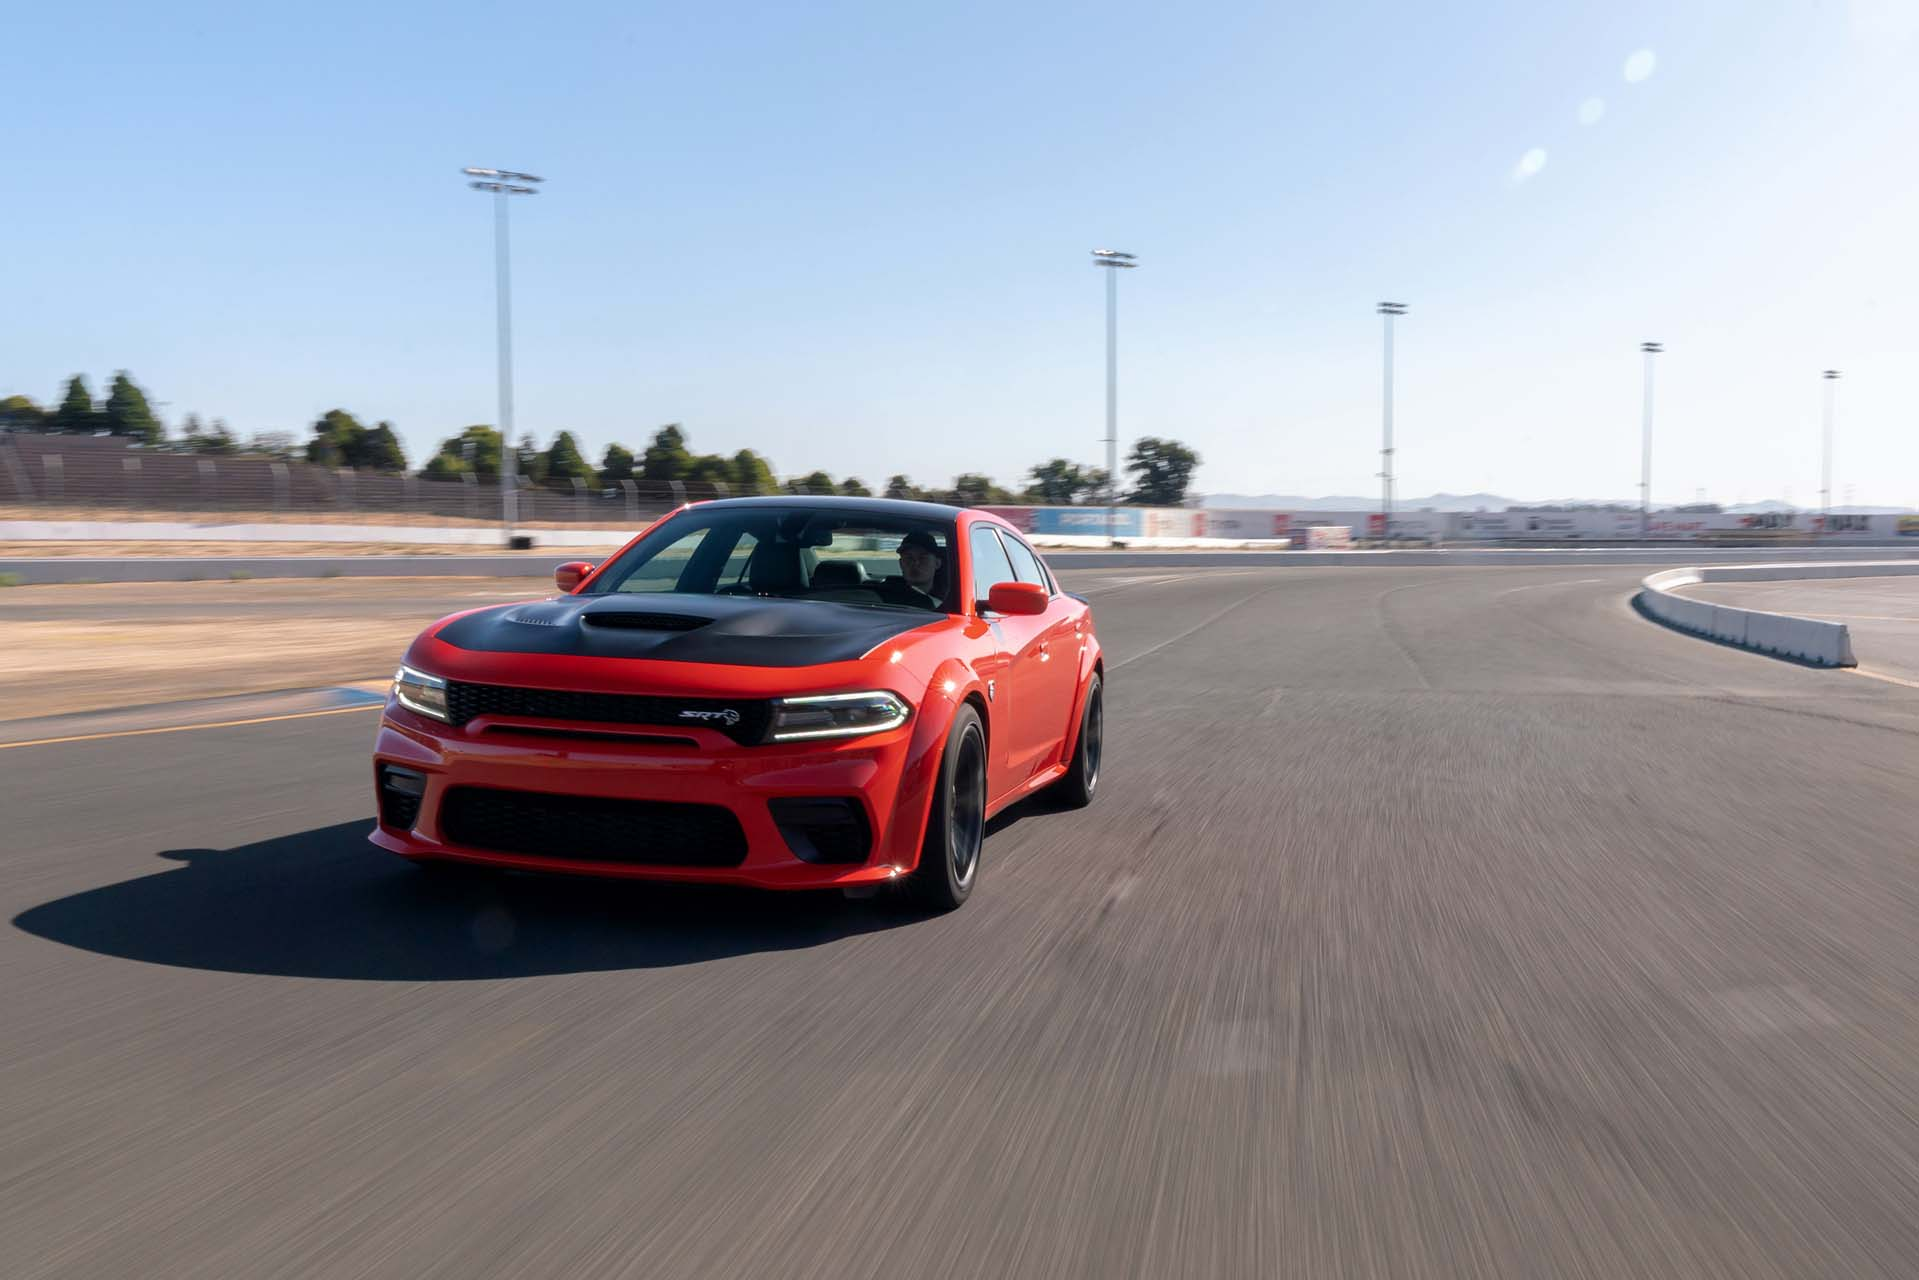 2020 Dodge Charger SRT Hellcat Widebody (Color: TorRed) Front Three-Quarter Wallpapers (3)